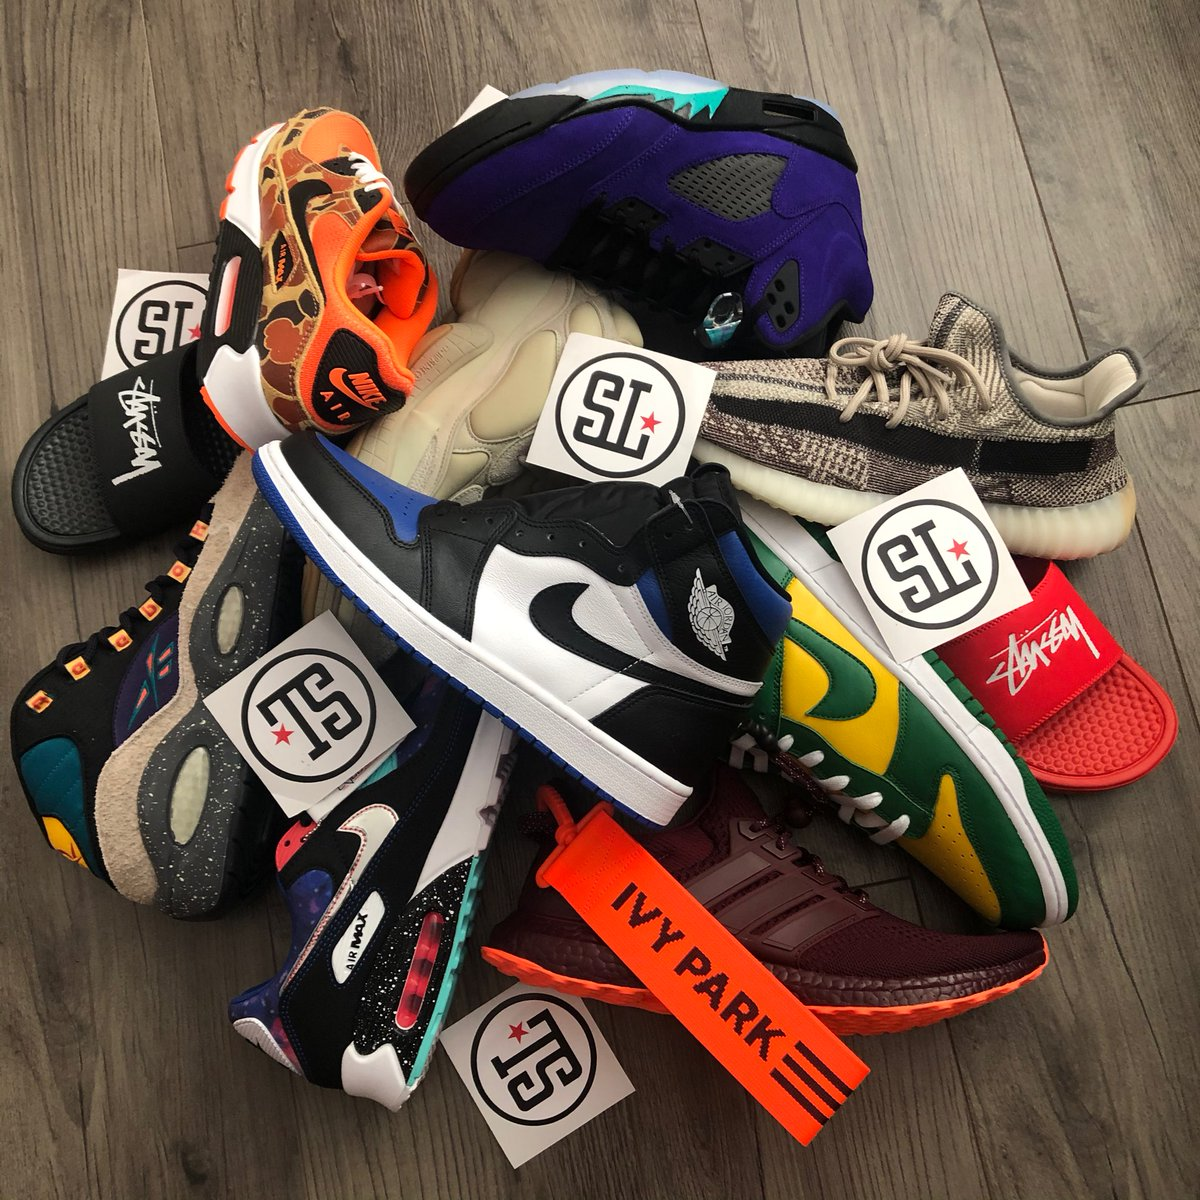 Solelinks On Twitter We Are Giving Away Free Sneakers To Celebrate Our 6th Anniversary Here At Solelinks Appreciate All The Support As Always Enter Https T Co Skqxz02ogx Https T Co Uvva5y5xhy Explore @solelinks twitter profile and download videos and photos links to sneaker deals, release info, restocks, etc(ps5 + xbox too). solelinks on twitter we are giving